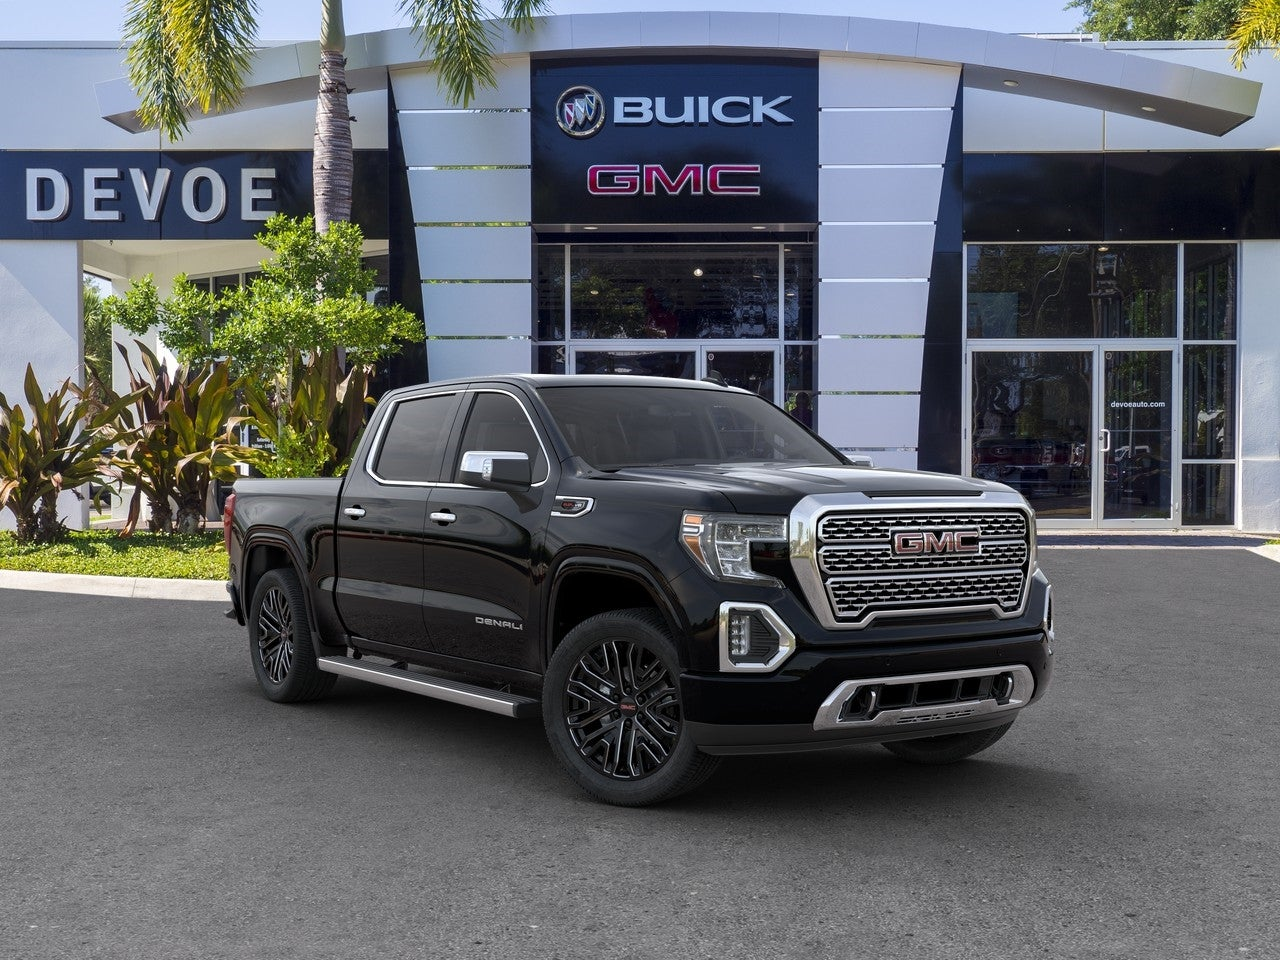 2020 GMC Sierra 1500 Crew Cab 4x4, Pickup #T20434 - photo 16